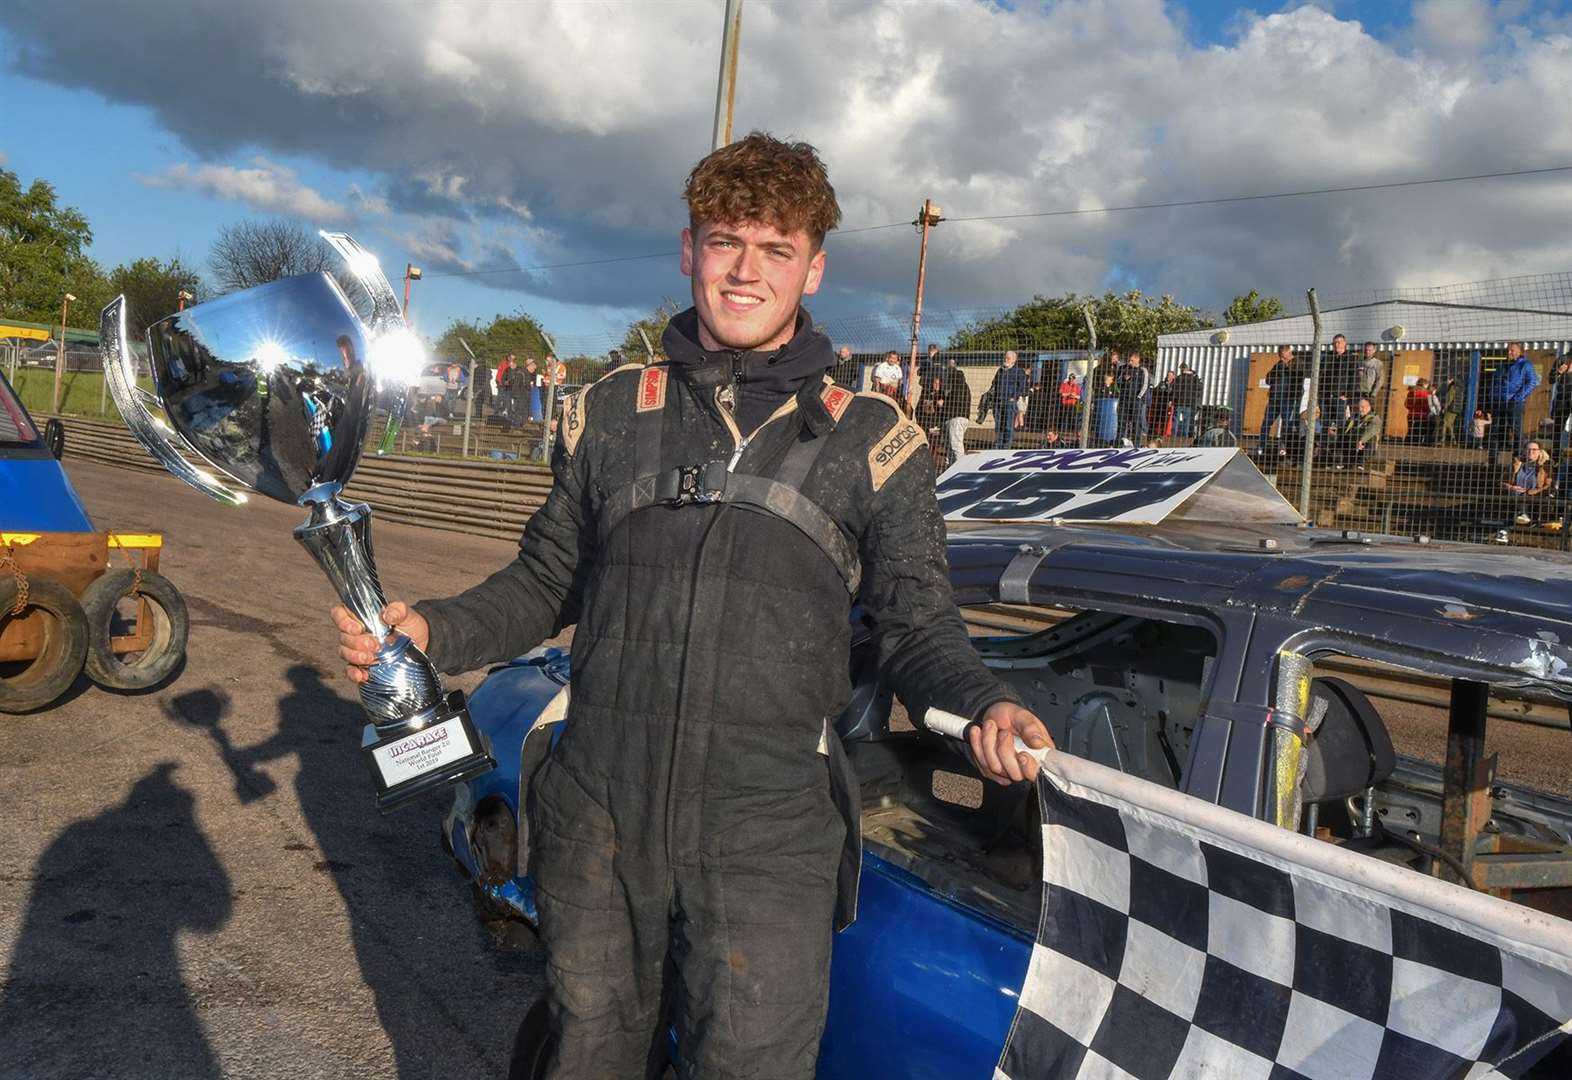 West Norfolk driver Callum Gill is on top of the world after borrowing car in final